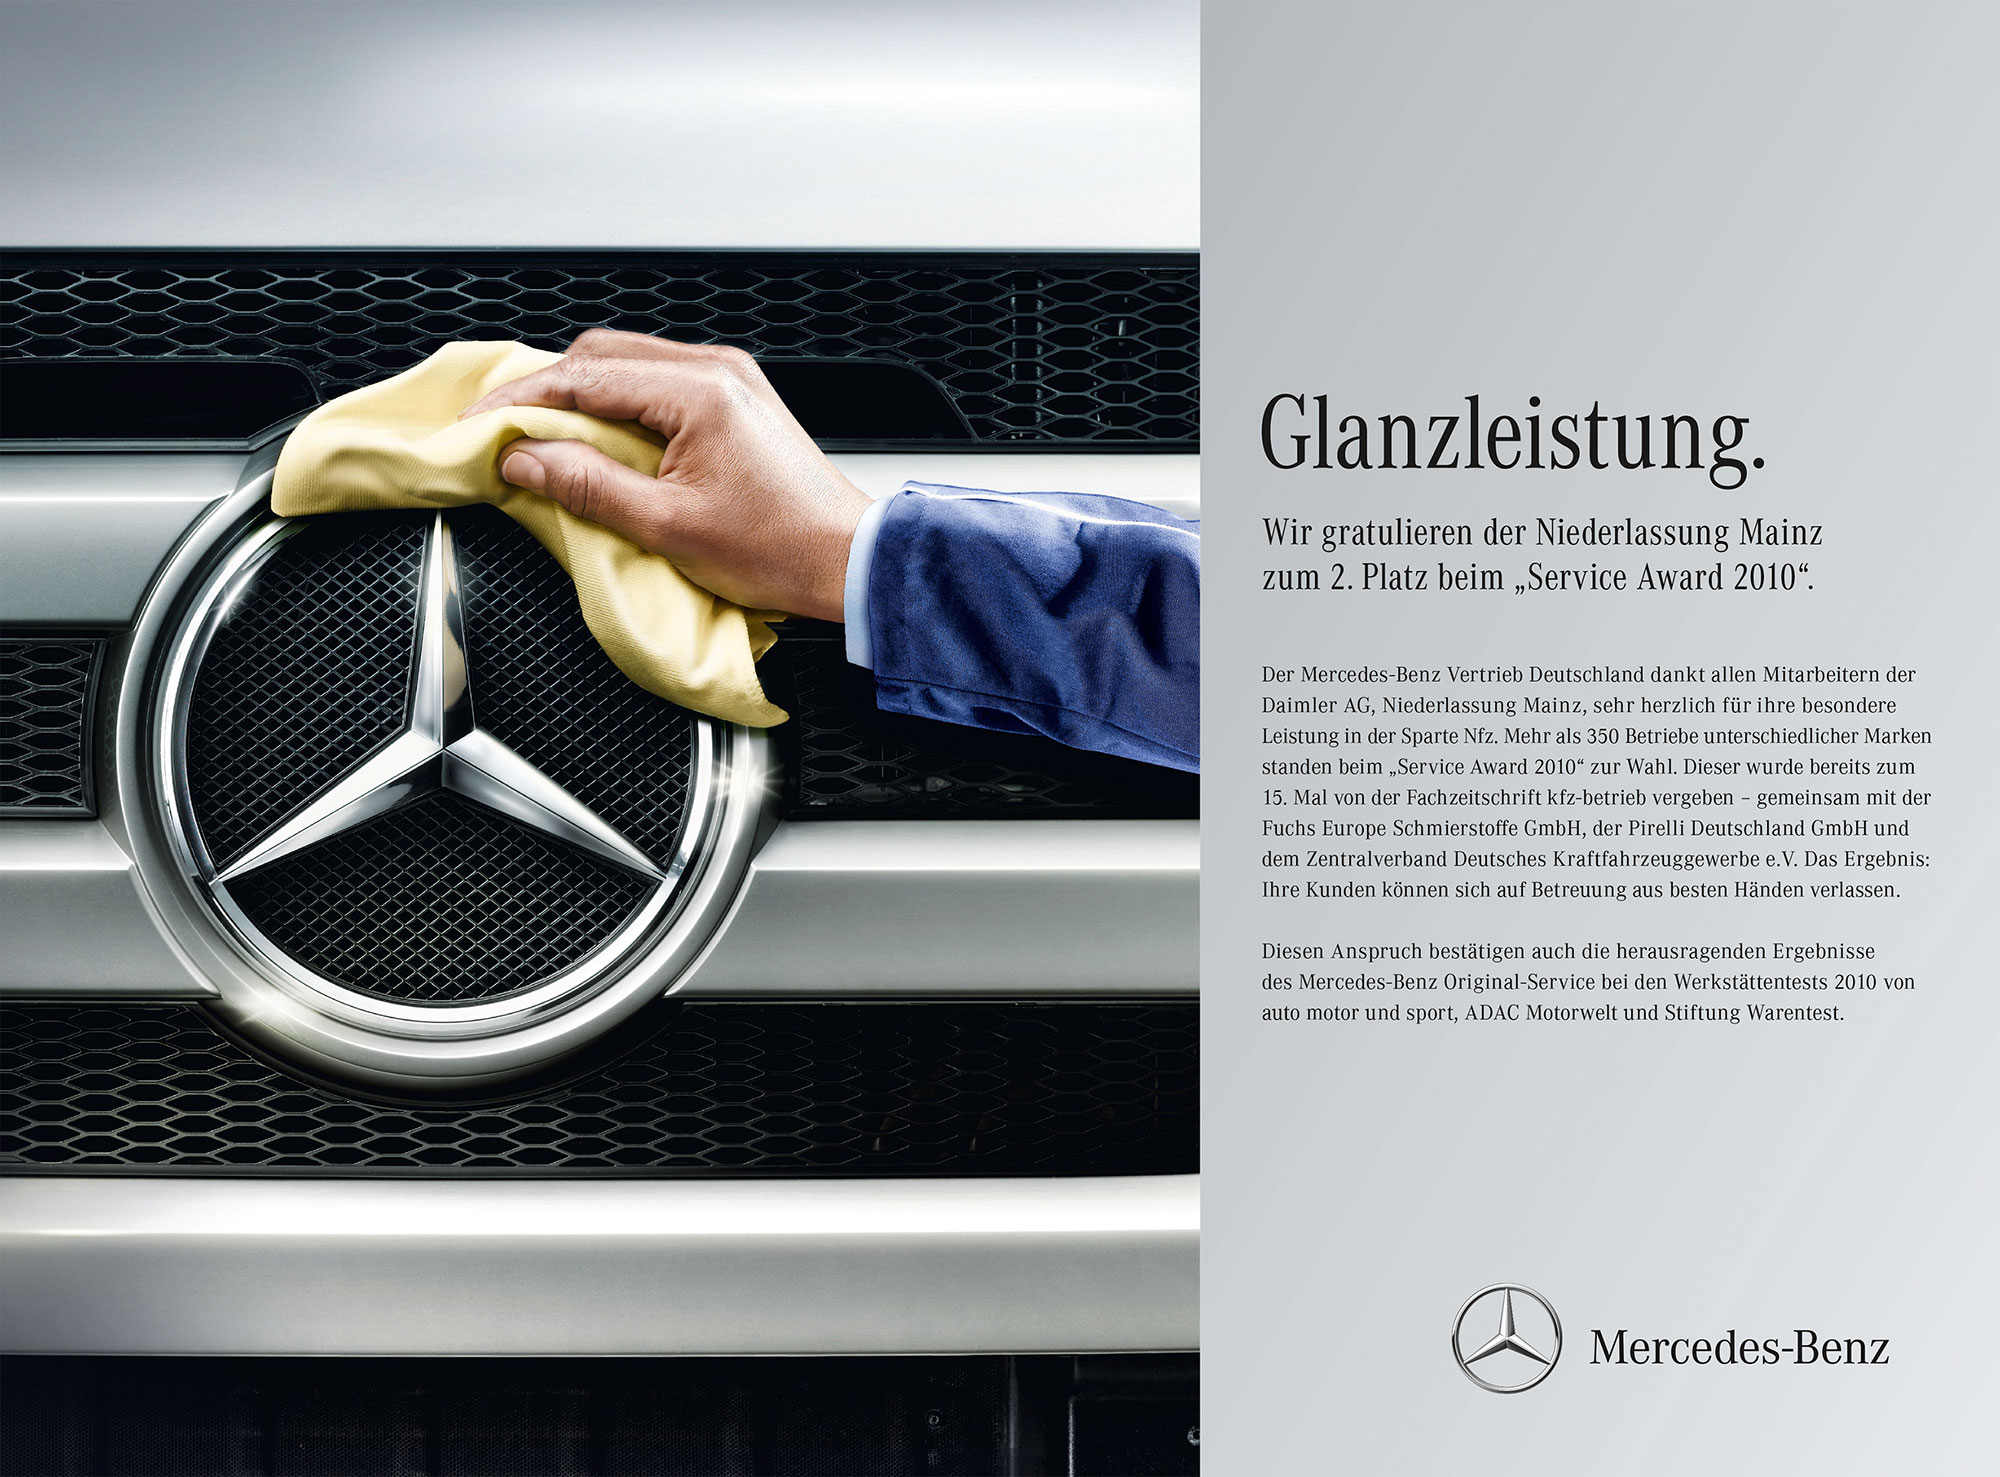 Advertising Still life Photographie Fotografie Studio Mercedes Benz Services Sternputzer Glanzleistung Still life Idris Kolodziej